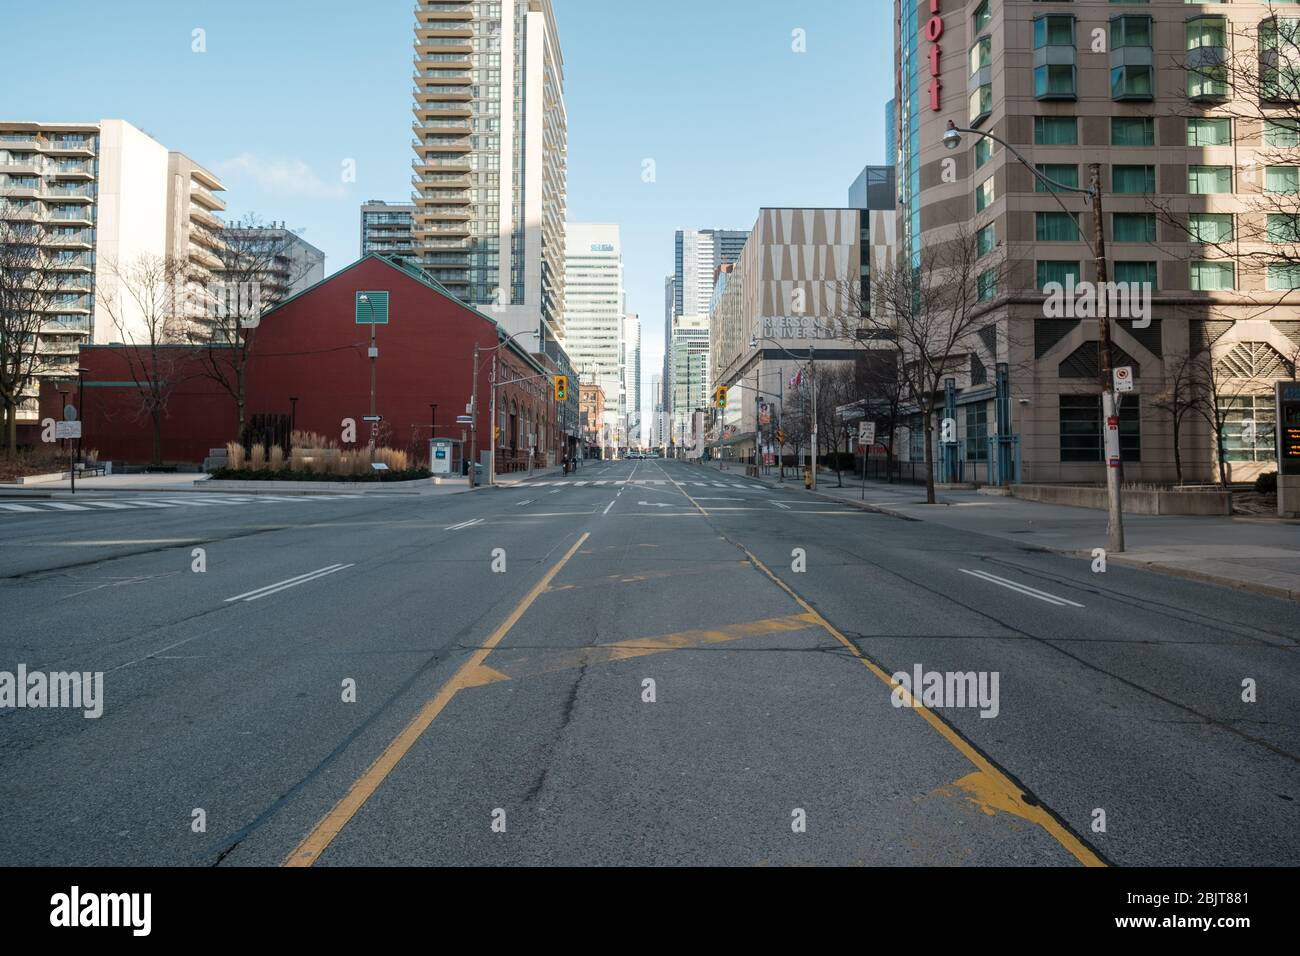 Downtown Toronto during COVID-19 pandemic - empty city streets Stock Photo